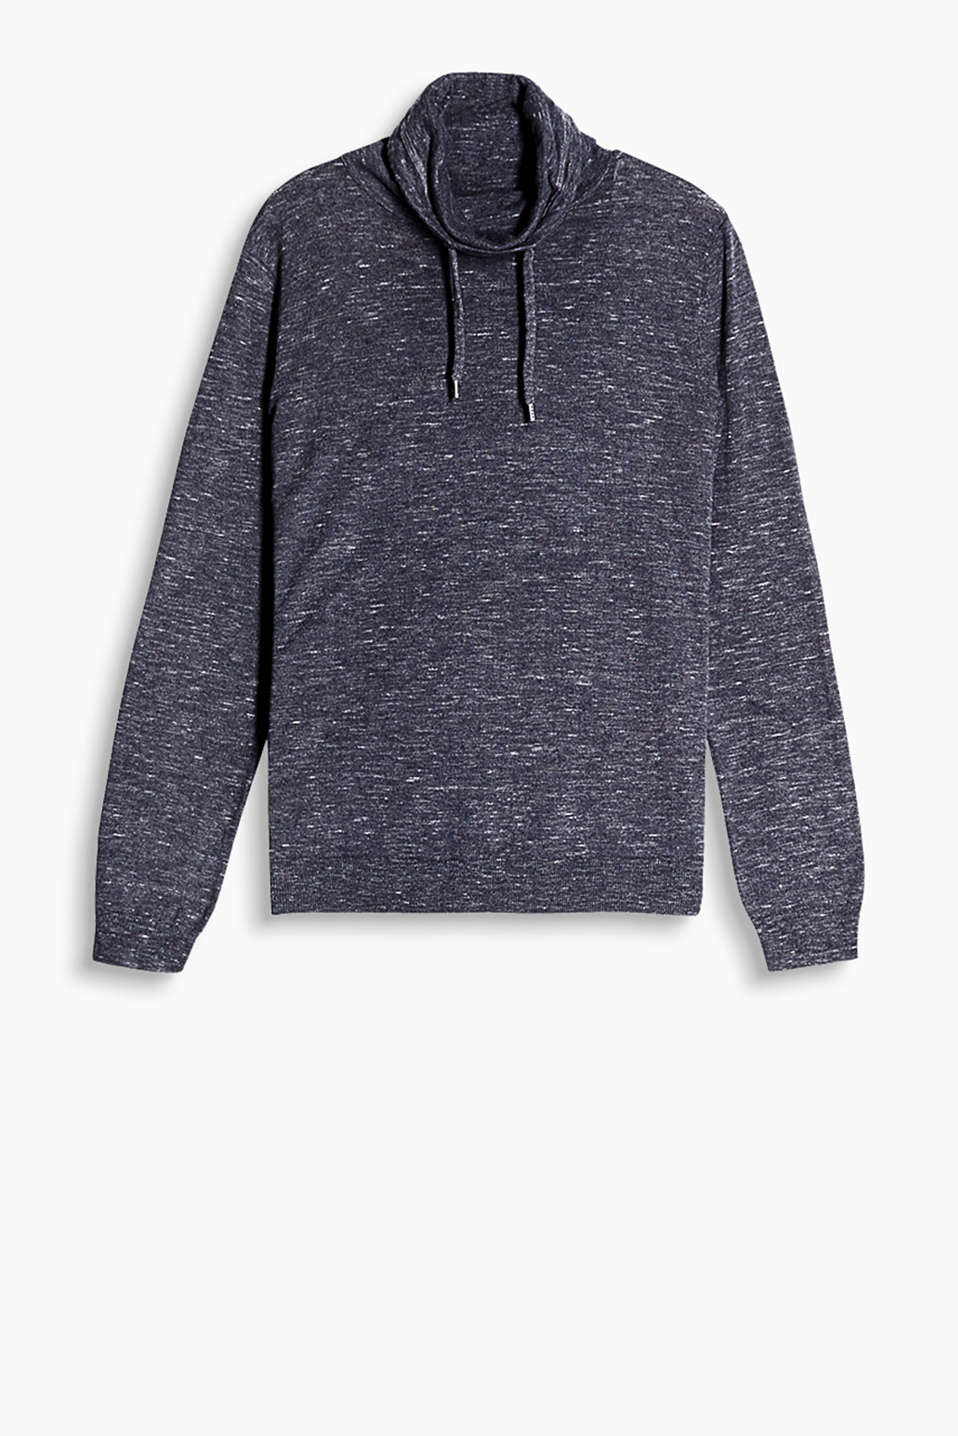 Pure cotton sweatshirt with a high, drawstring stand-up collar